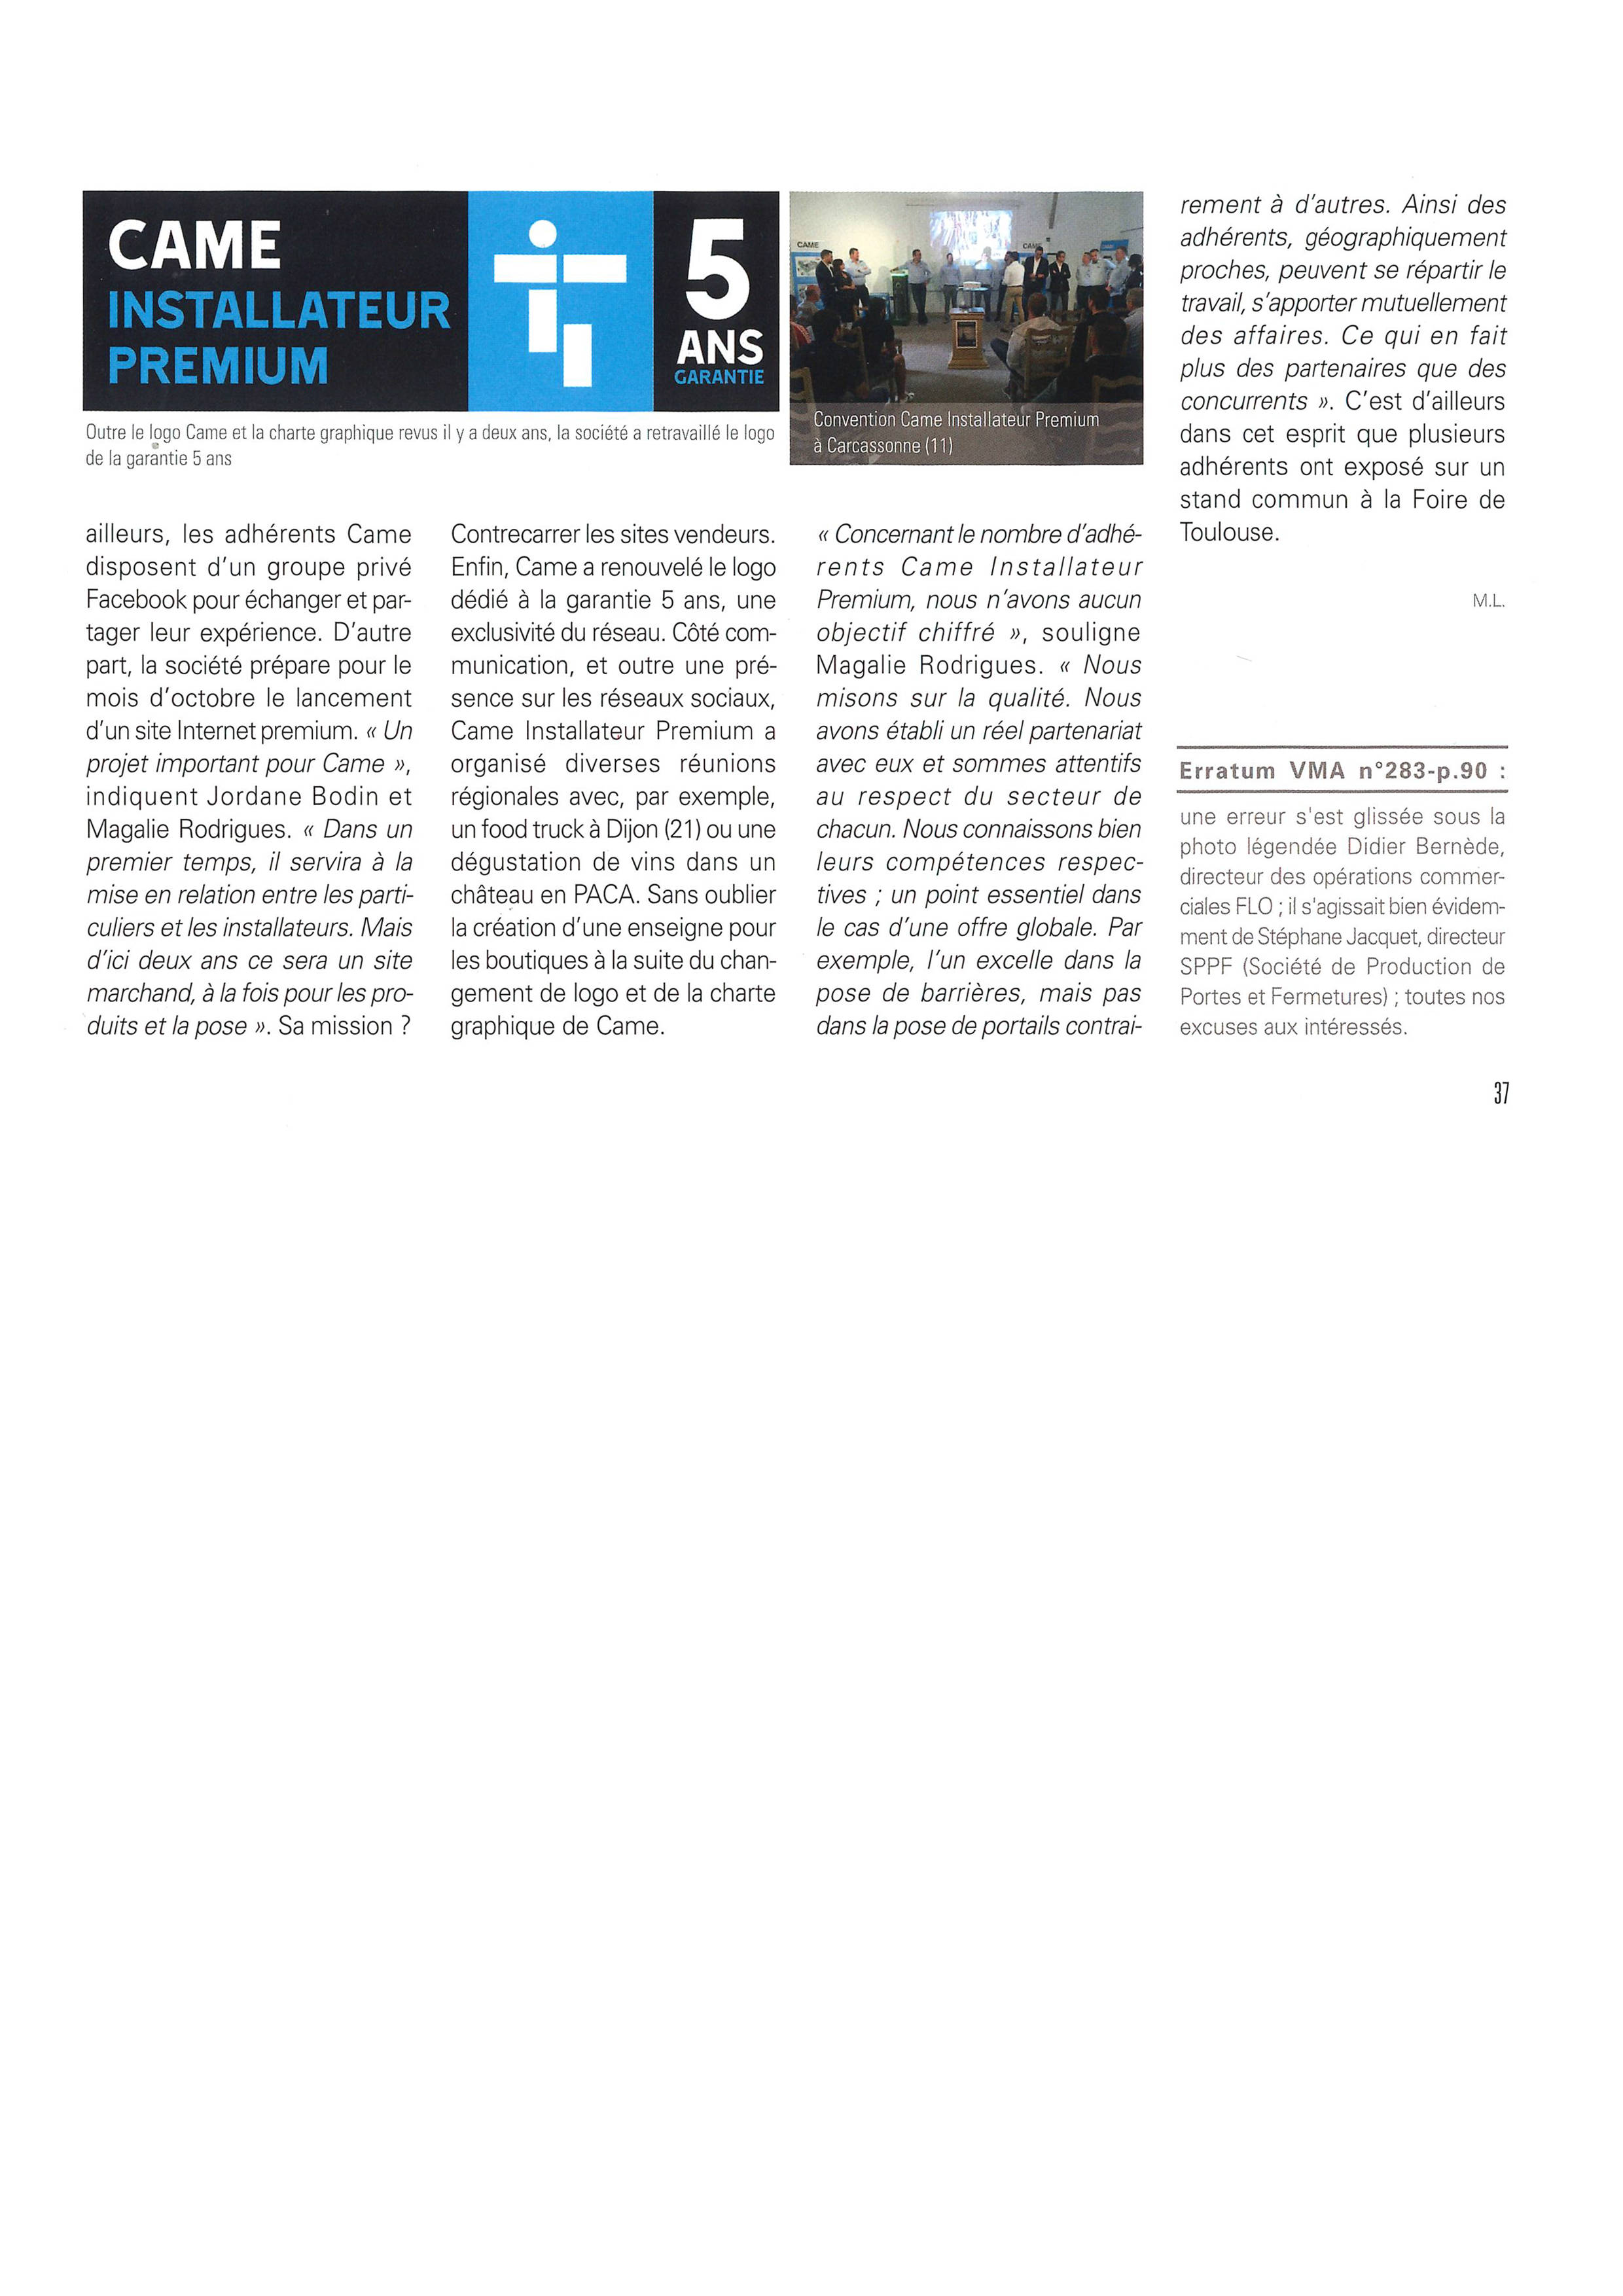 ARTICLE PRESSE 2 came dubard automatismes